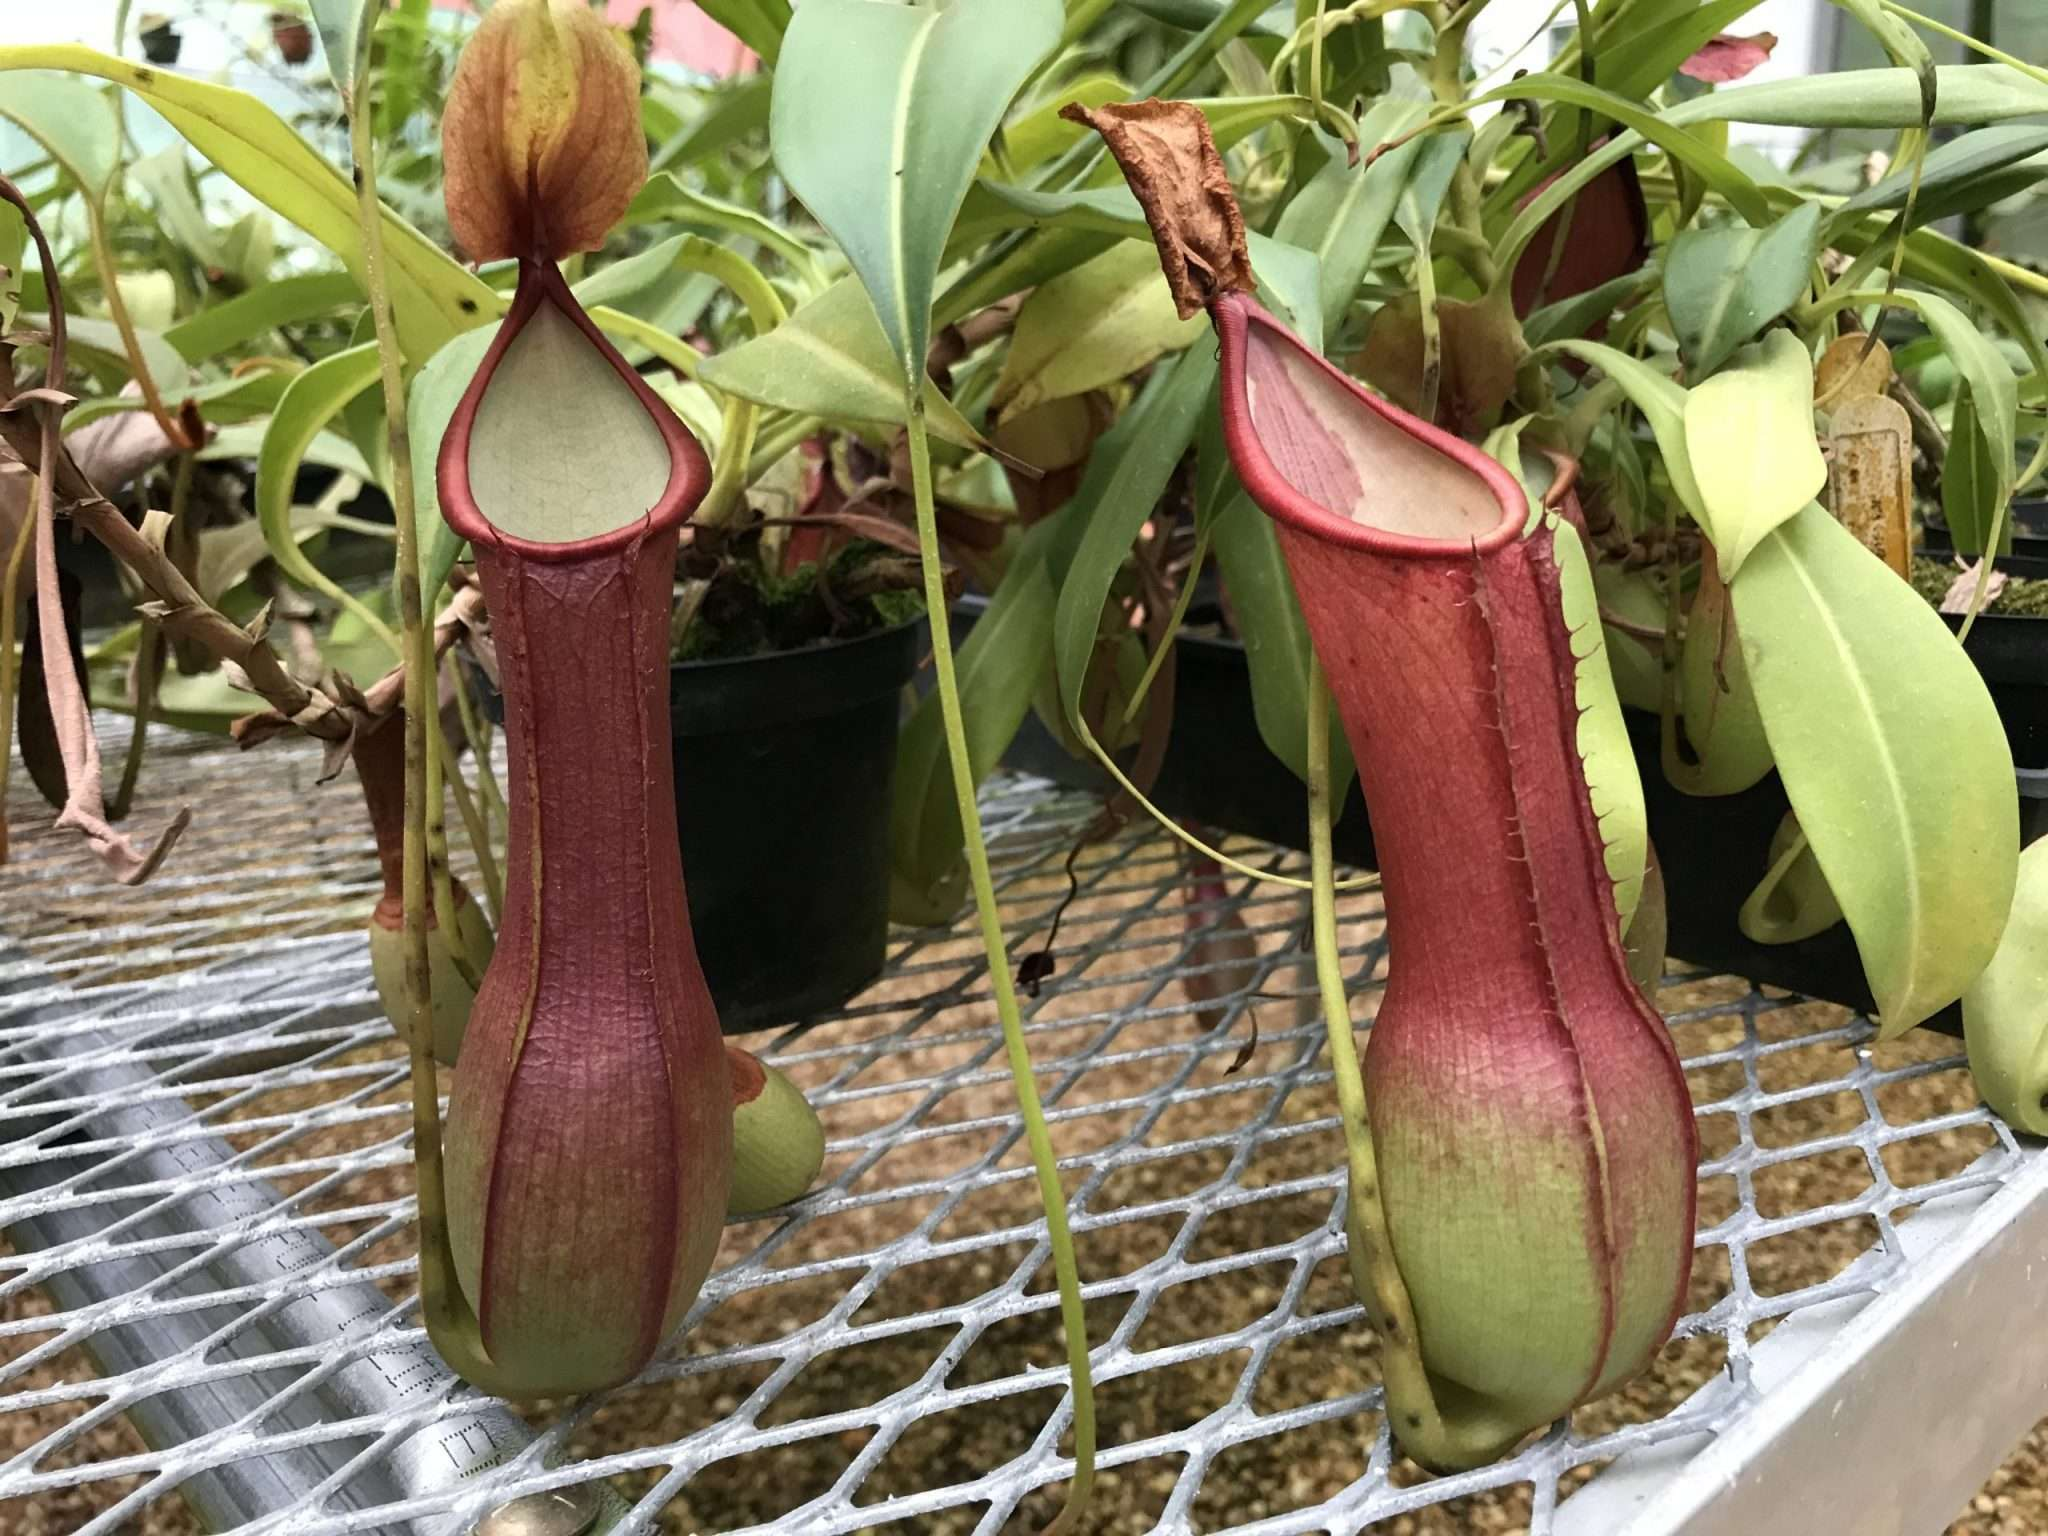 Nepenthes alata (pink)